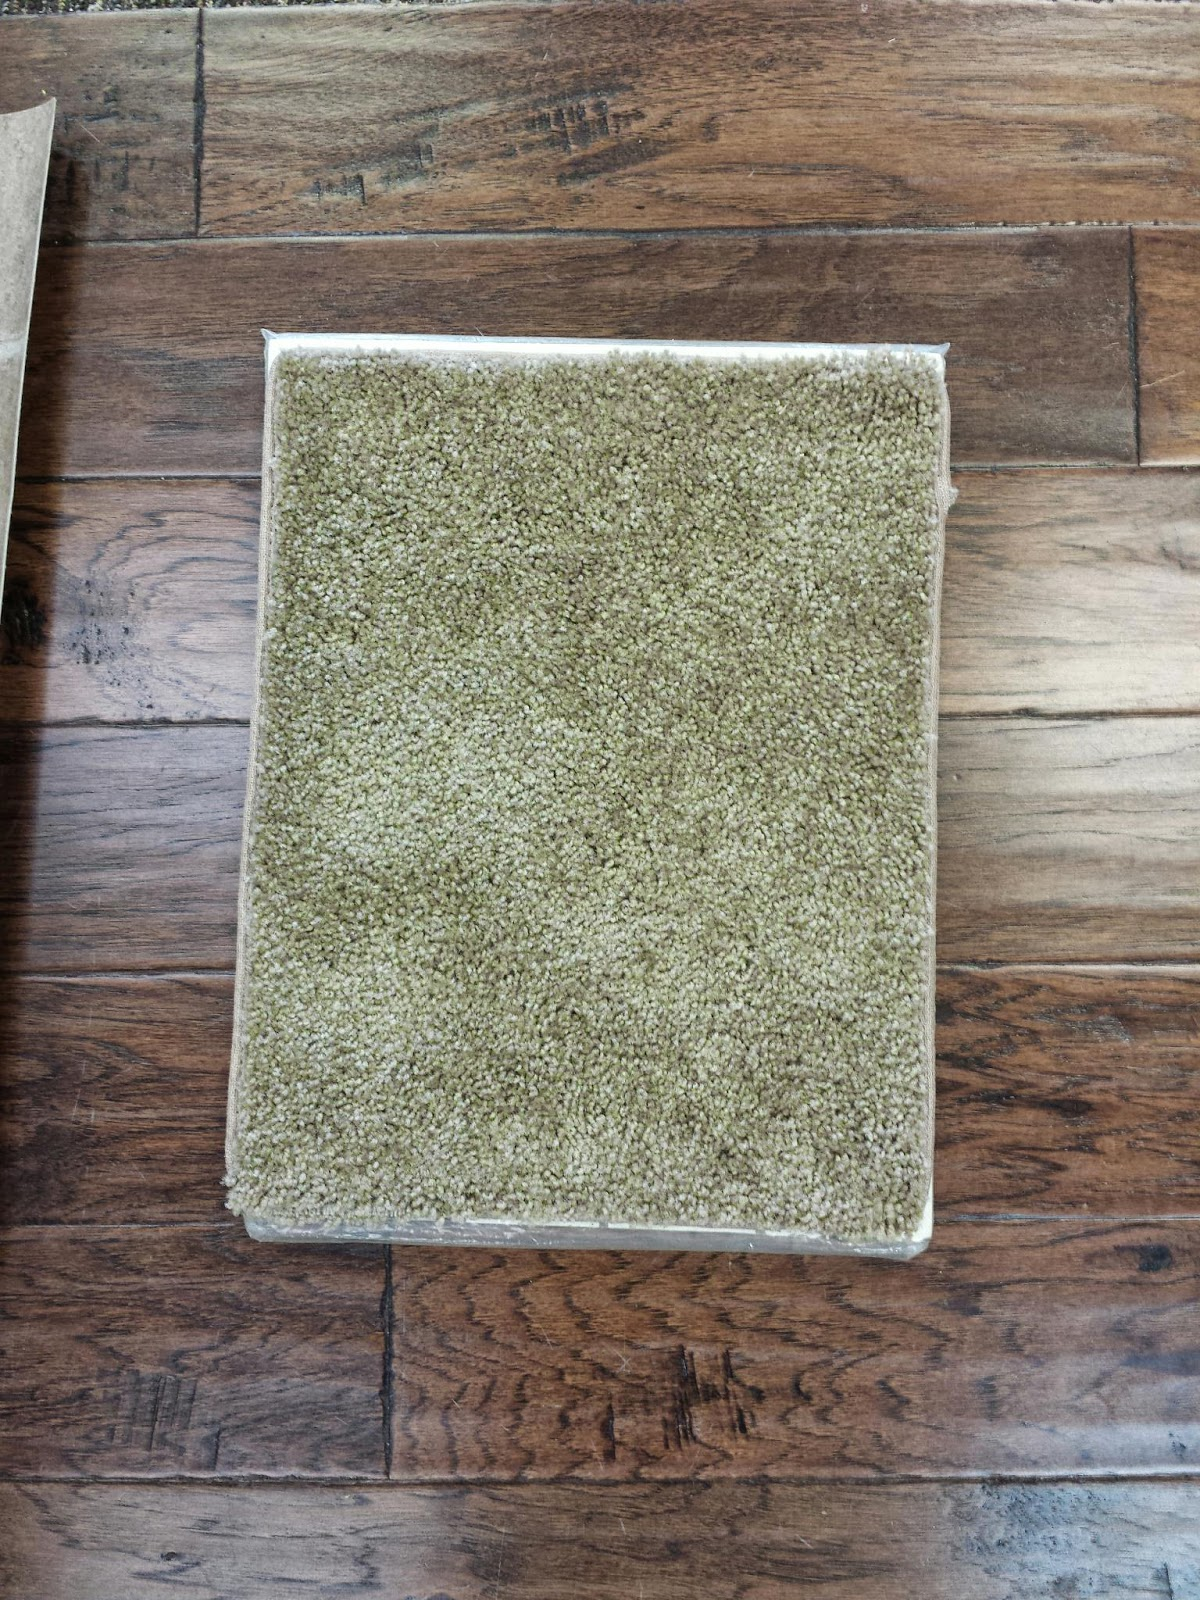 Gray Berber Carpet in addition Castlegate 35 Oz Indoor Frieze Area Rug Collection besides Castlegate 35 Oz Indoor Frieze Area Rug Collection together with Rite Rug Appointment furthermore See The World I T By Shaw Philadelphia. on froth carpet pad